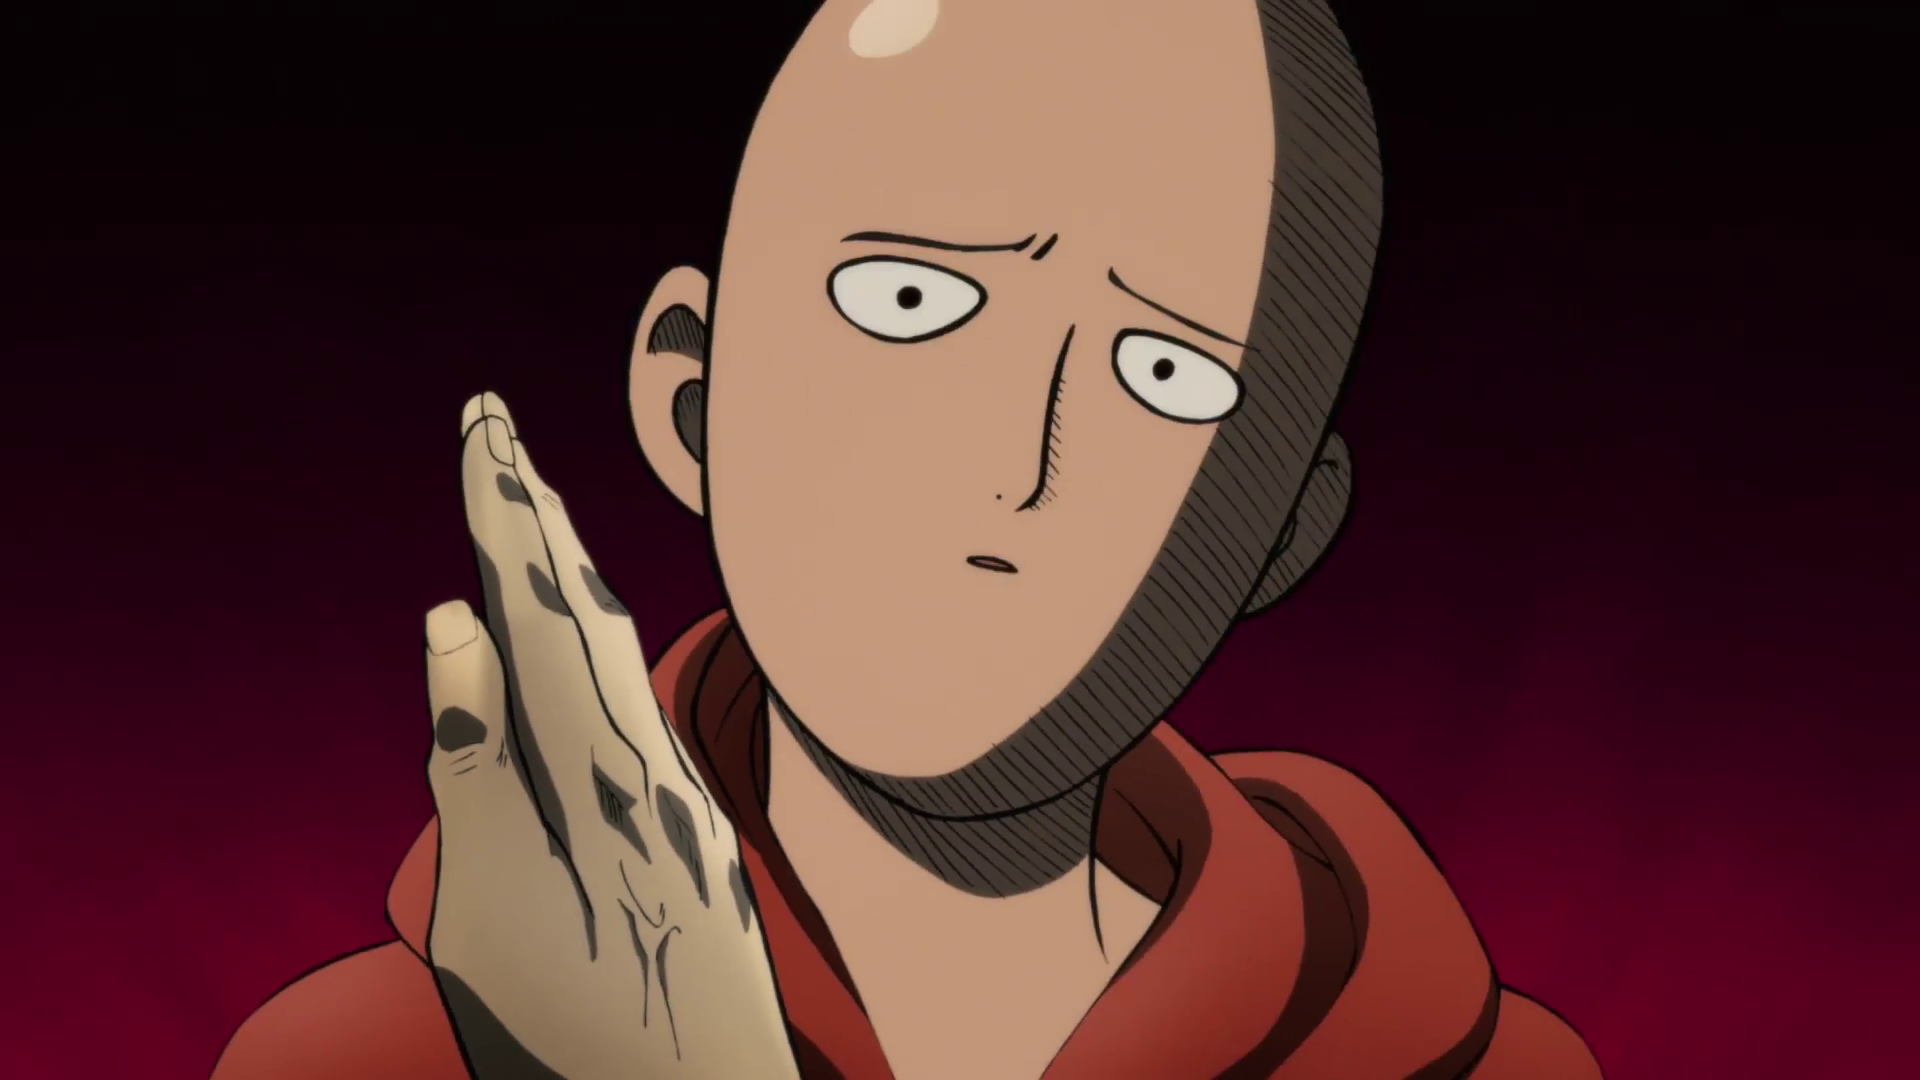 Pin by bz29 on One Punch Man Season 2 One punch man, One